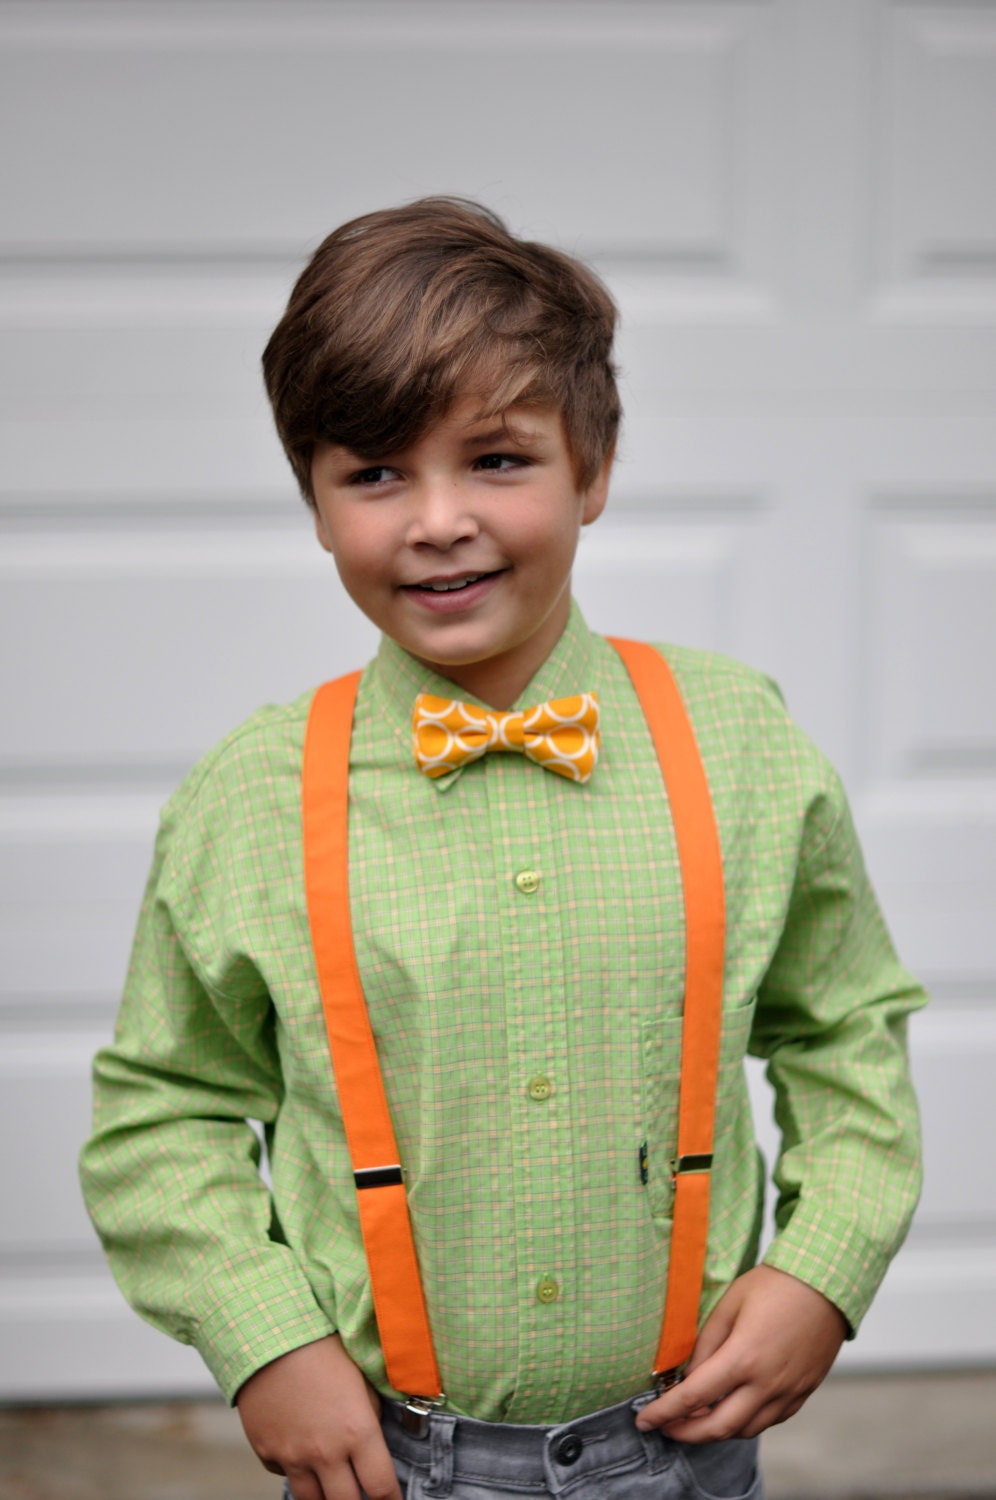 Shop for boys suspenders online at Target. Free shipping on purchases over $35 and save 5% every day with your Target REDcard.